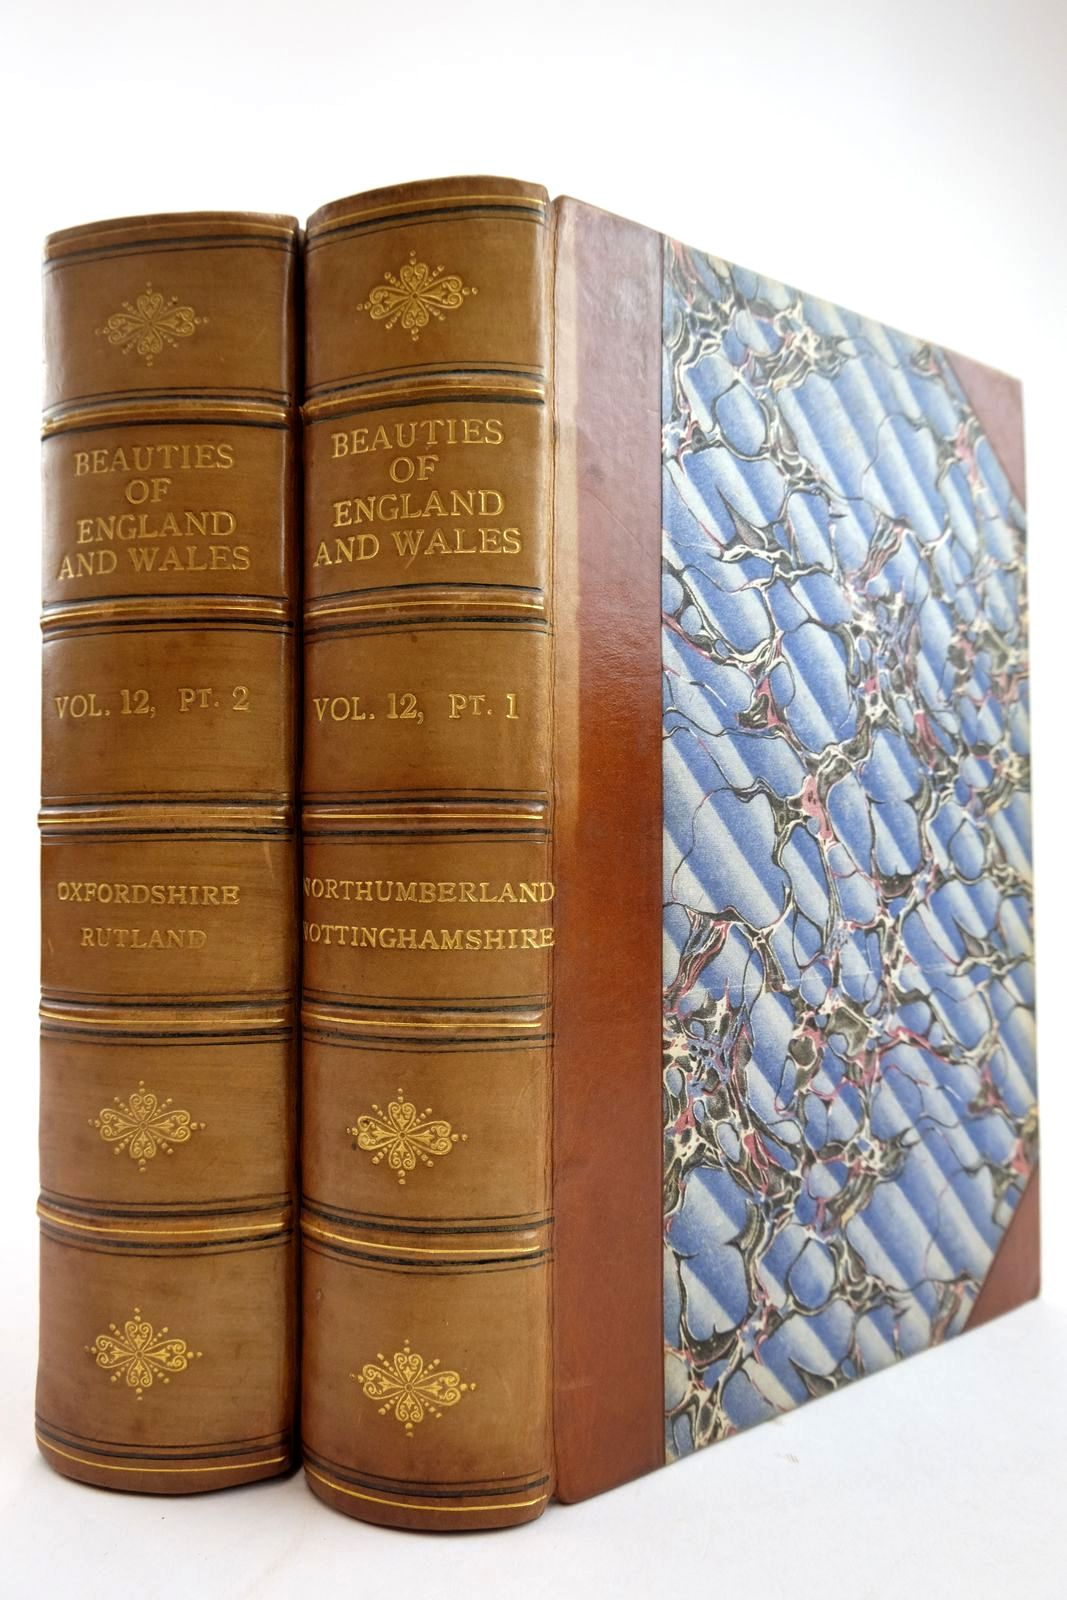 Photo of THE BEAUTIES OF ENGLAND AND WALES  VOL. XII PARTS I & II: NORTHUMBERLAND, NOTTINGHAMSHIRE, OXFORDSHIRE, RUTLAND written by Hodgson, J. Laird, F.C. Brewer, J.N. published by Vernor, Hood & Sharpe, Longman, Hurst, Rees And Orme, J. Cuthell, J. Harris, B. Crosby & Co., J.M. Richardson (STOCK CODE: 2134133)  for sale by Stella & Rose's Books